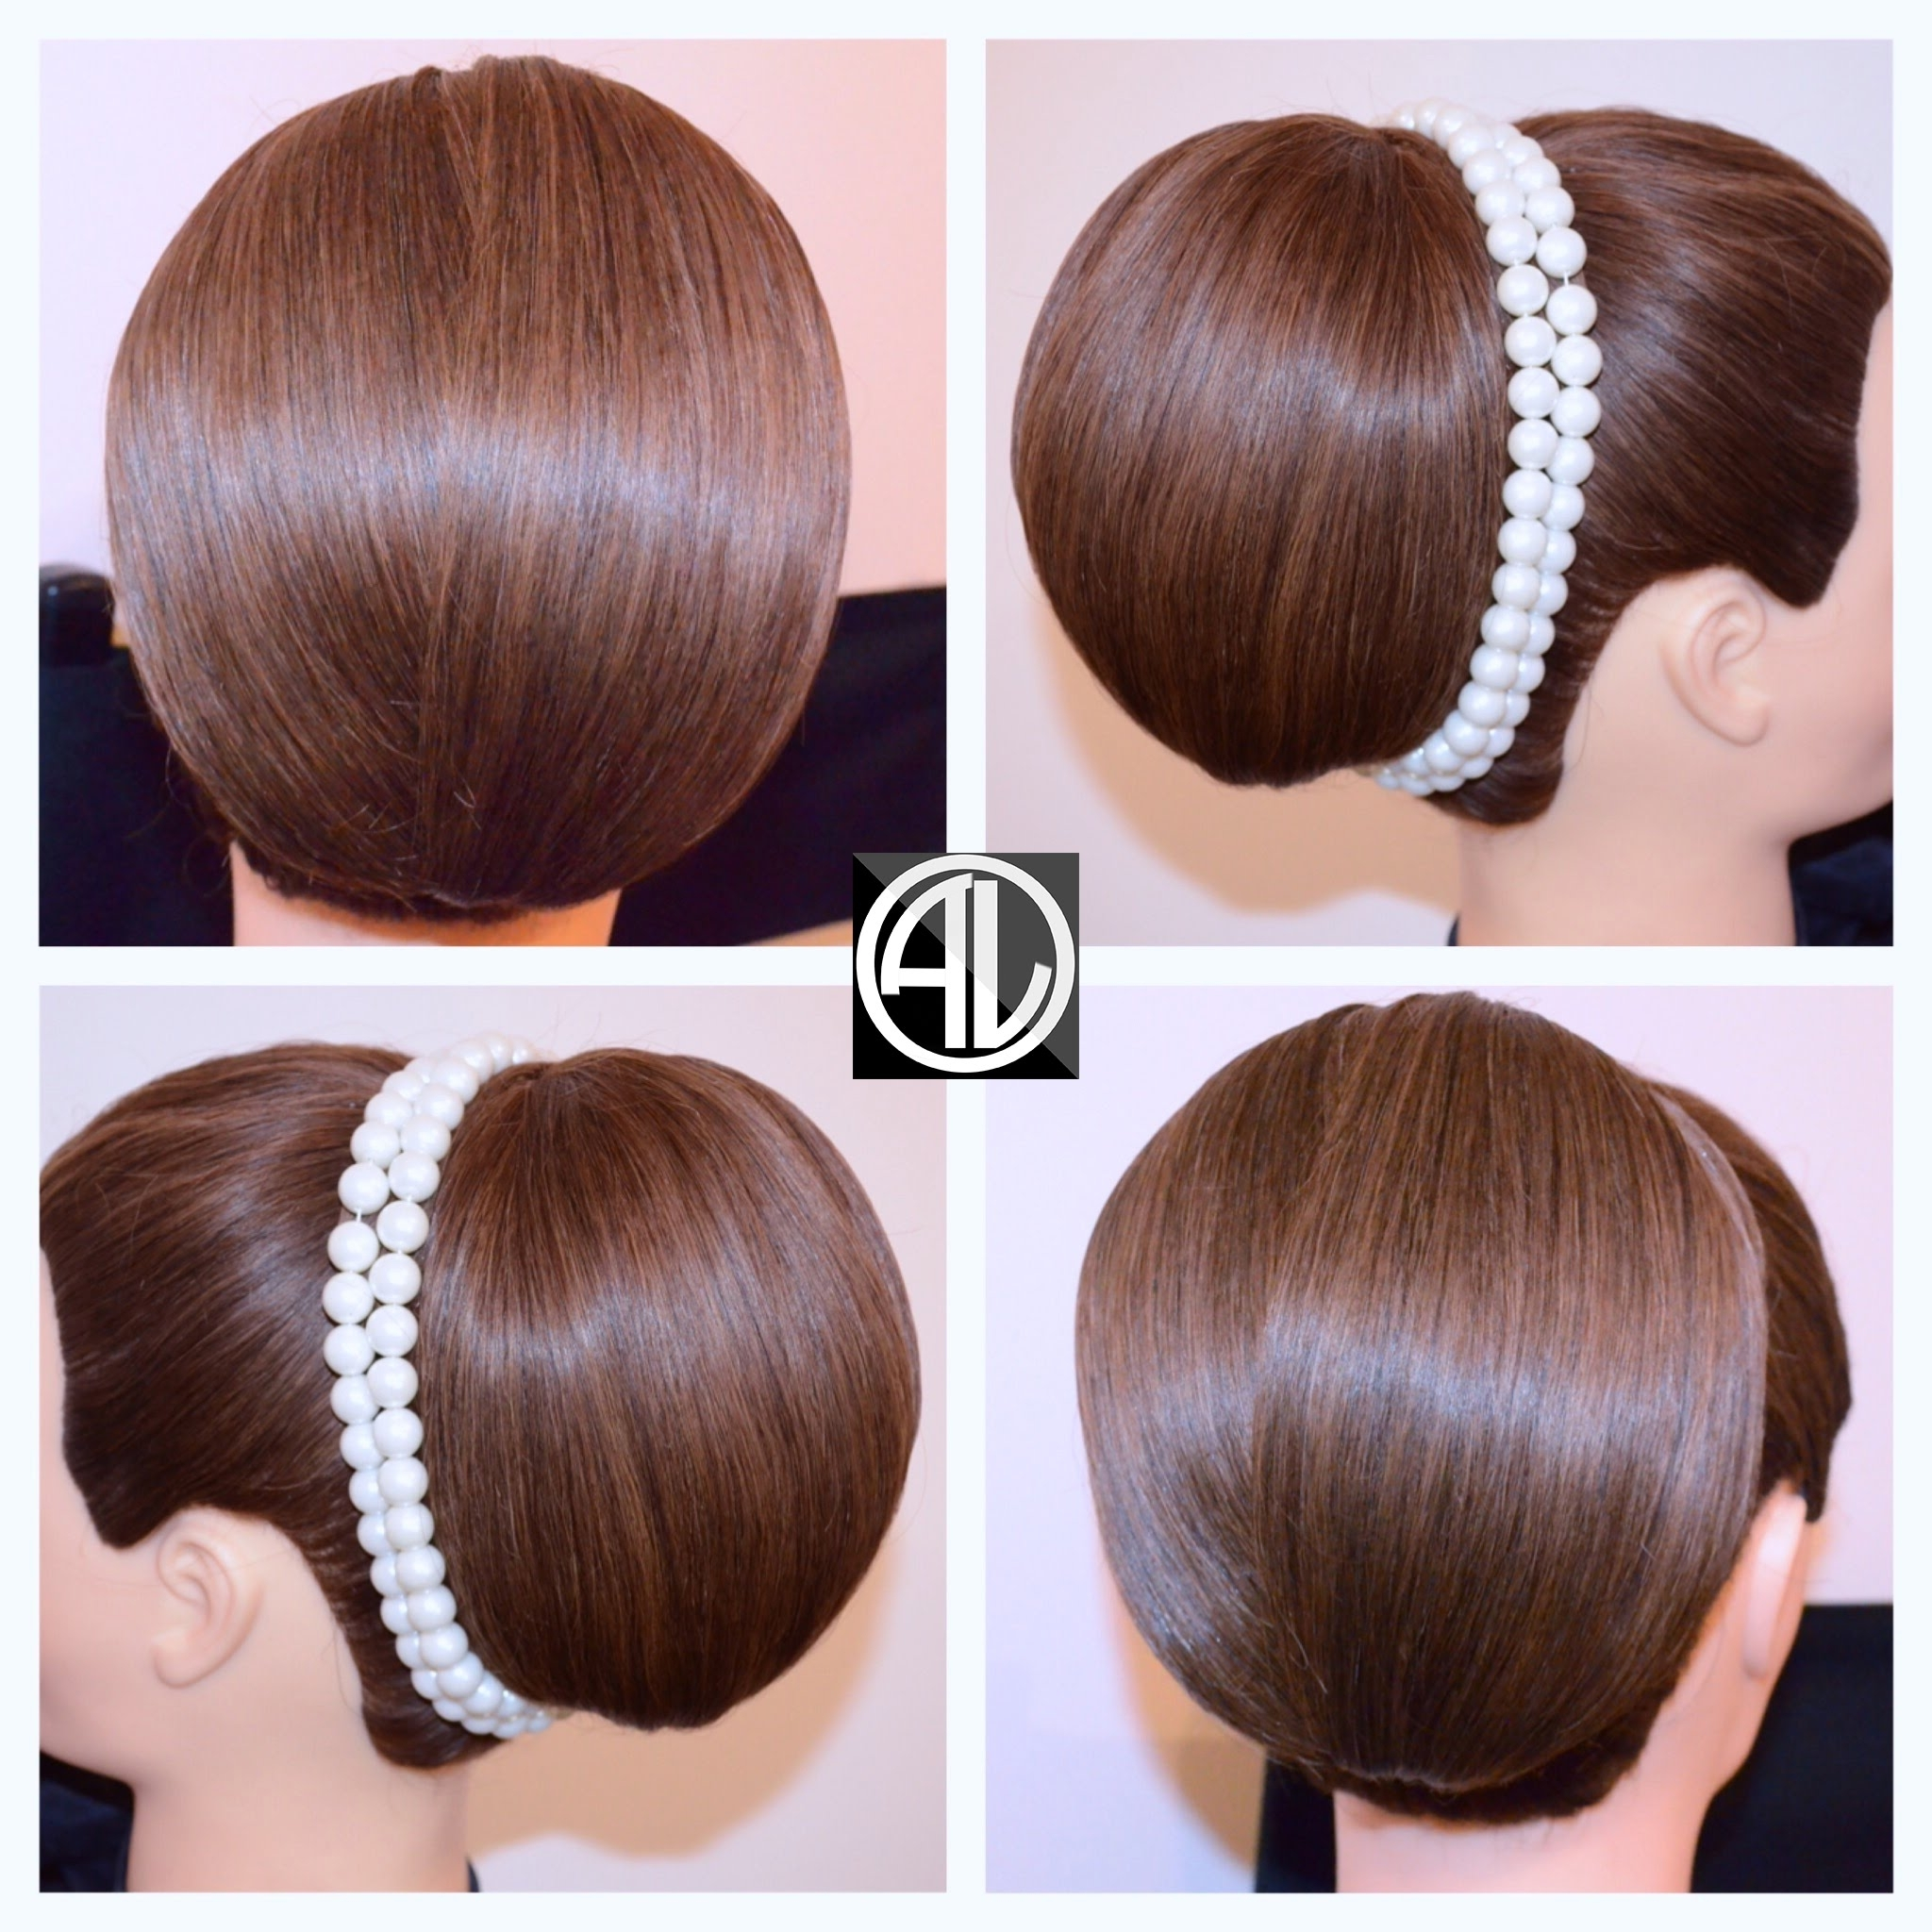 Widely Used Audrey Hepburn Wedding Hairstyles Regarding Vintage Hair 60s Hairstyle Udp Bridal Asian Classy Wedding Hairstyle (View 2 of 15)